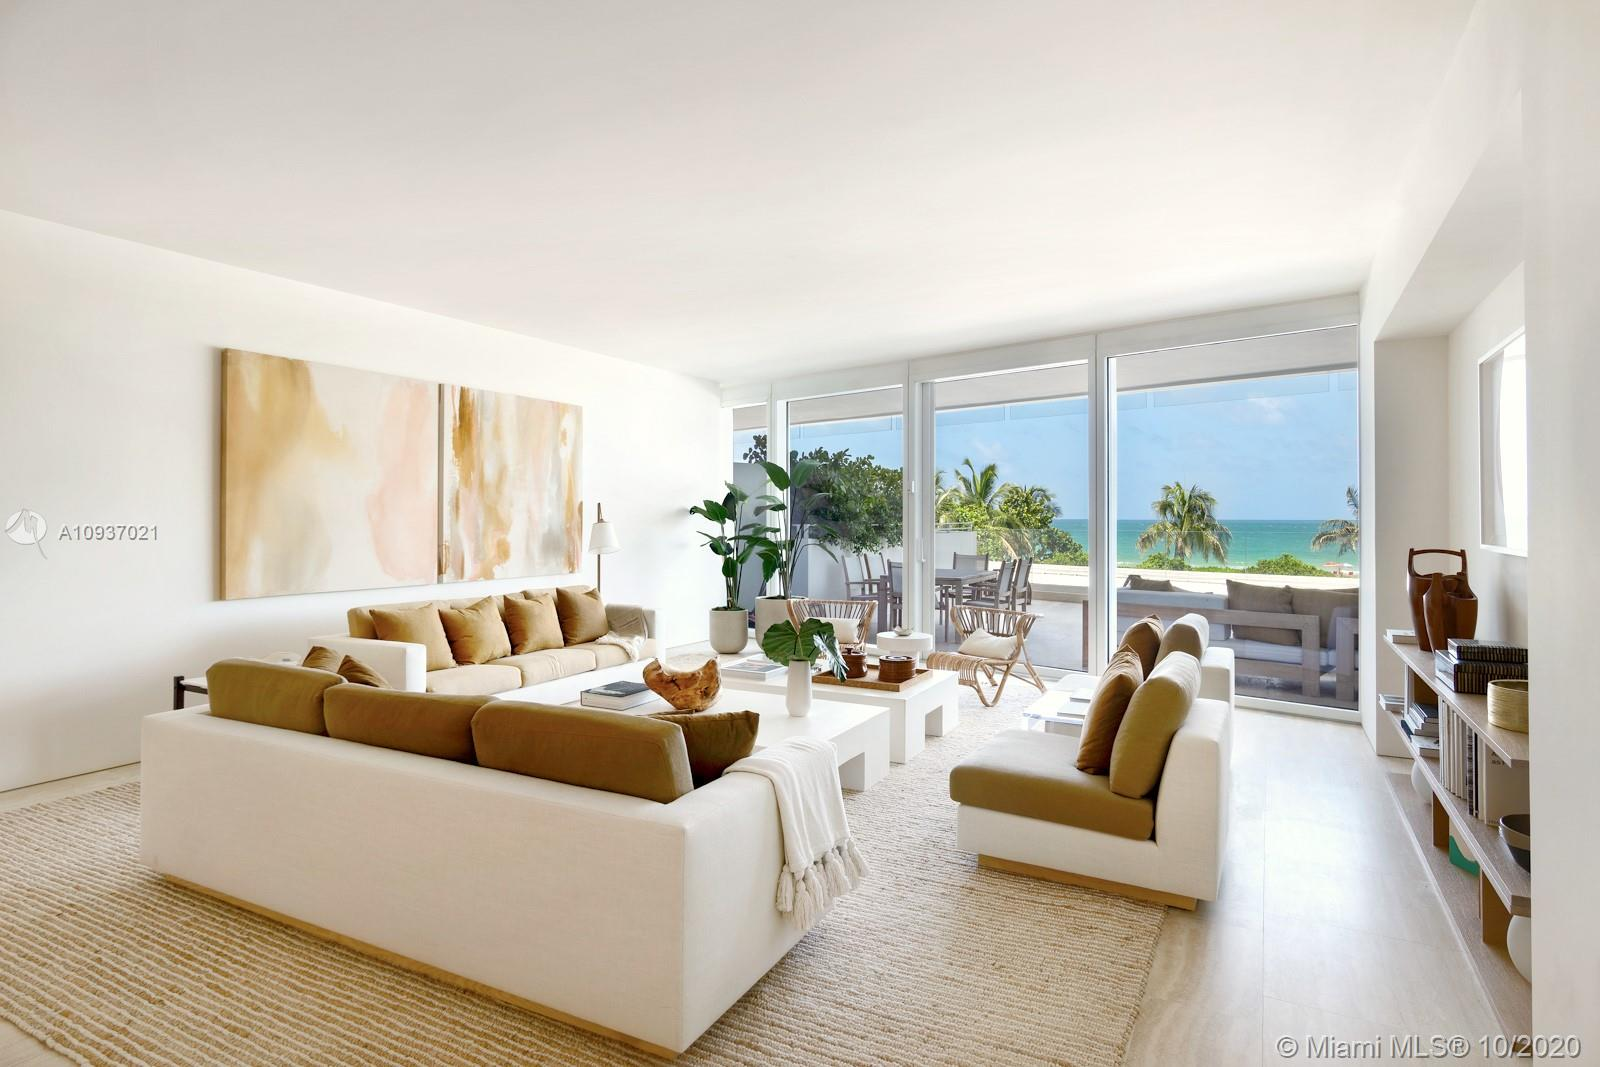 9001 Collins Ave, Unit #S-203 Luxury Real Estate